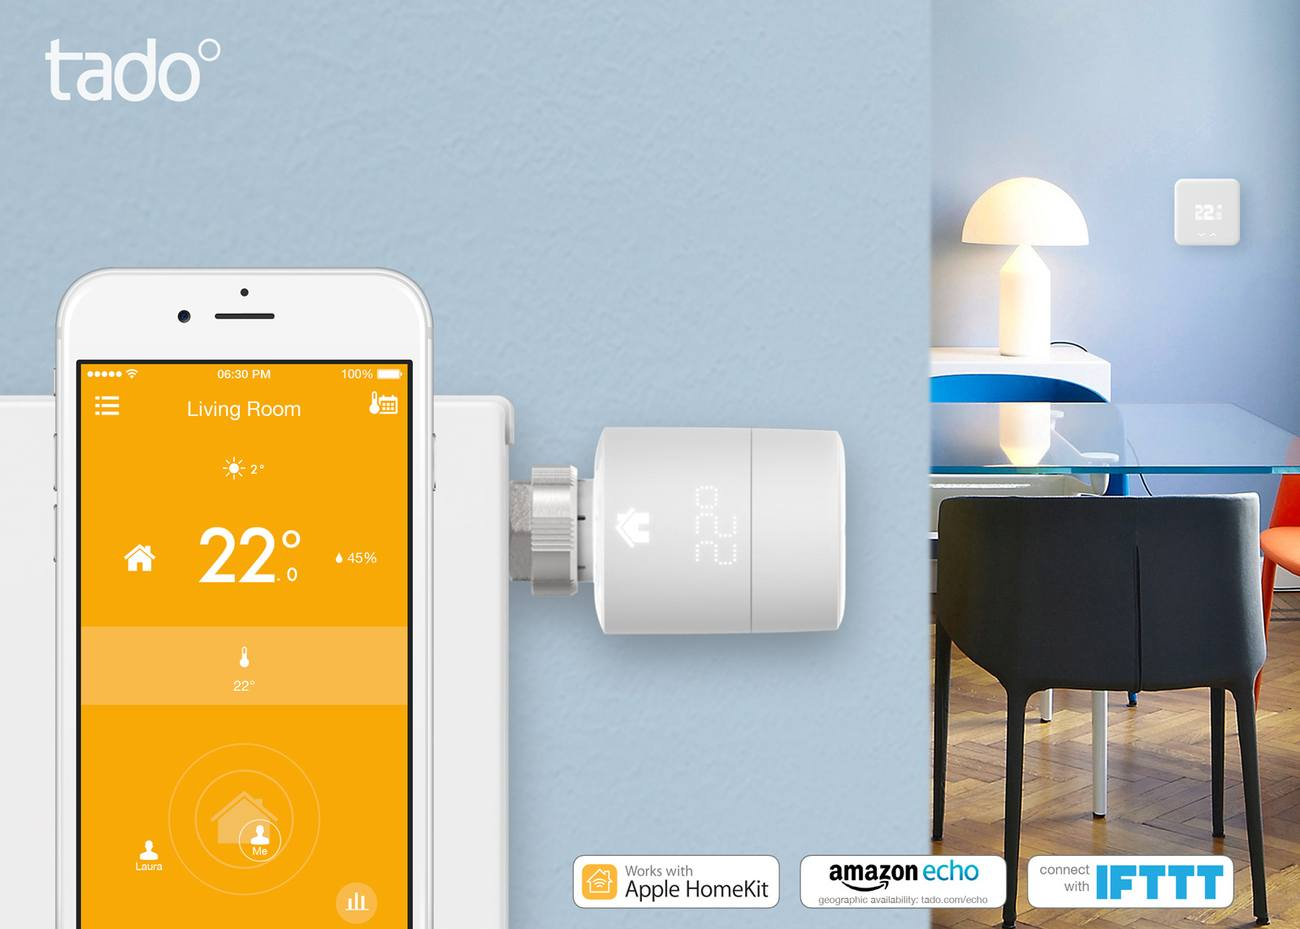 Tado 3rd Generation Smart Thermostat